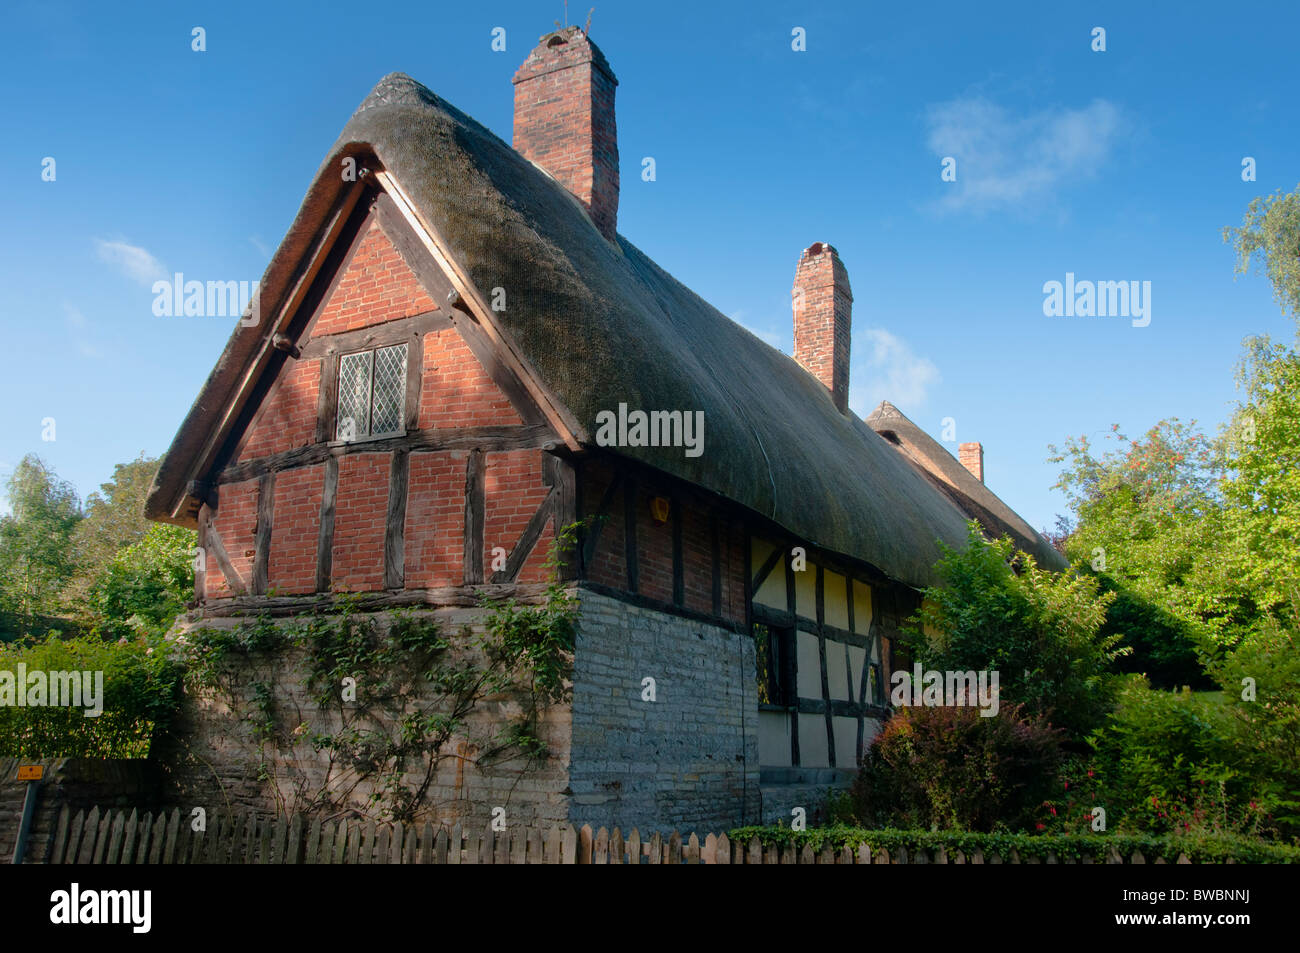 Anne Hathaway's cottage home, wife of William Shakespeare, in Stratford upon Avon Warwickshire. UK - Stock Image